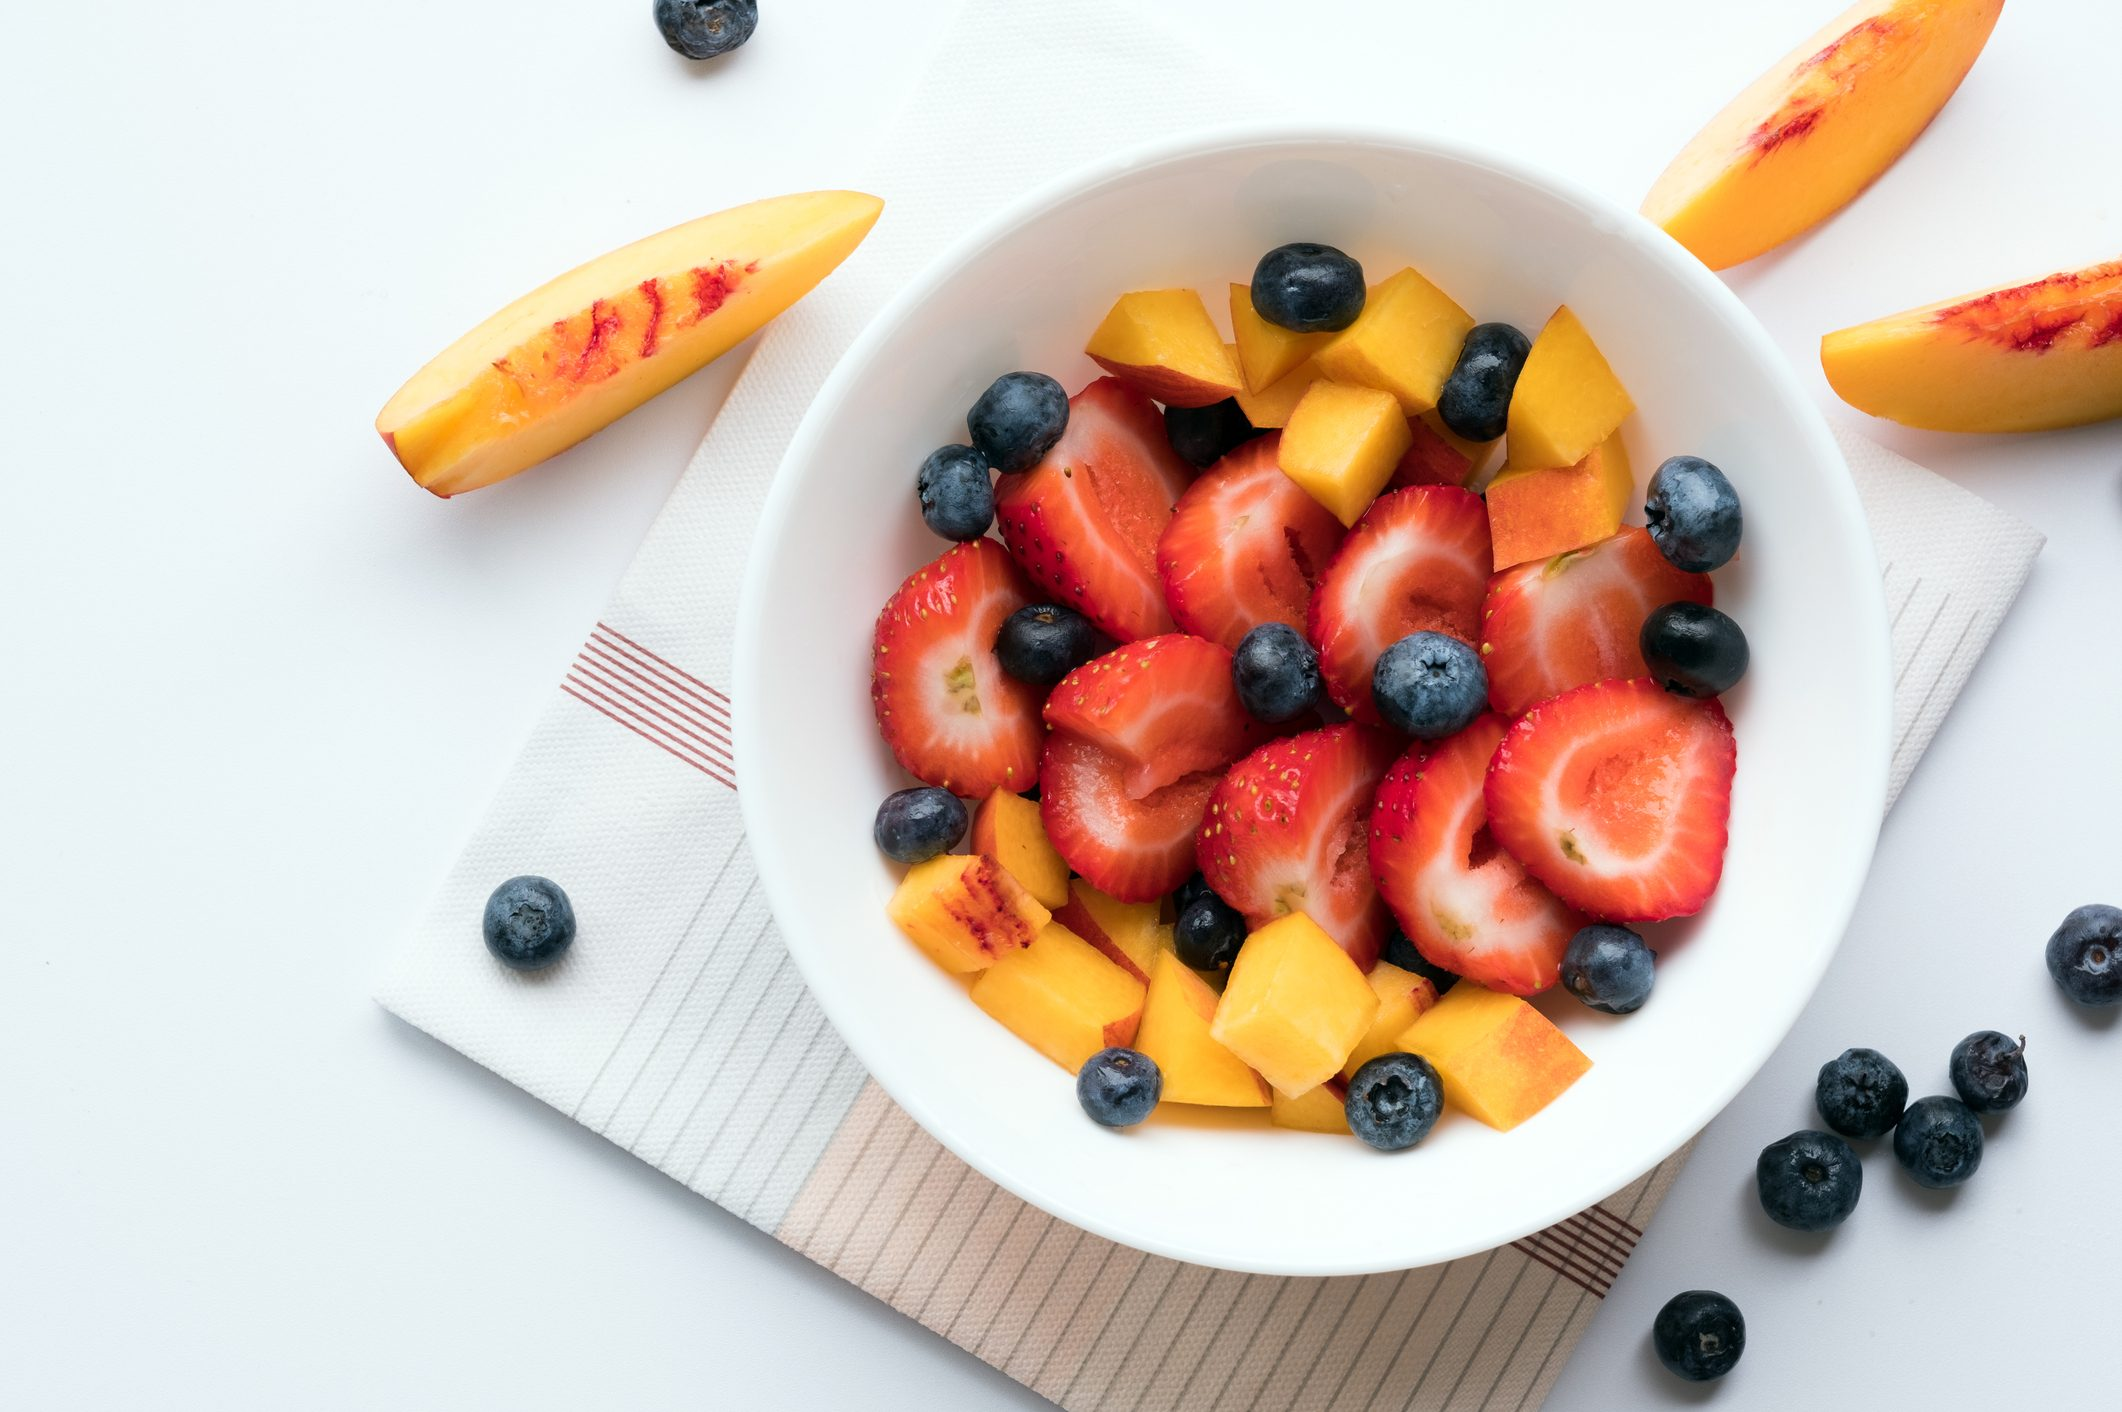 Bowl of healthy fresh berries fruit salad